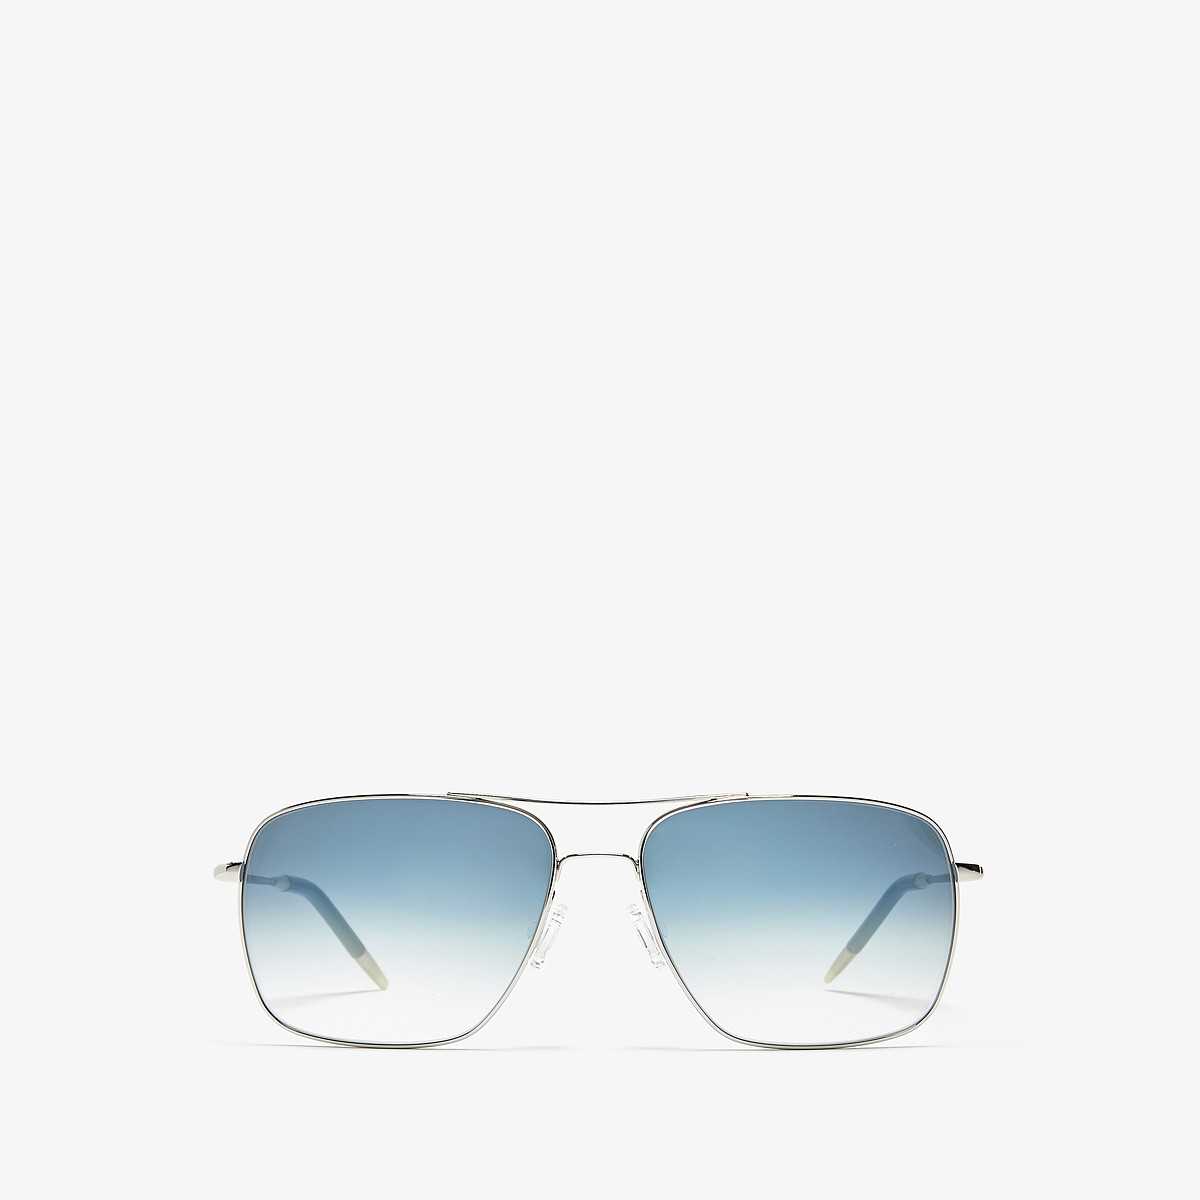 Oliver Peoples Clifton - Silver/Chrome Saphire Photochromic Vfx